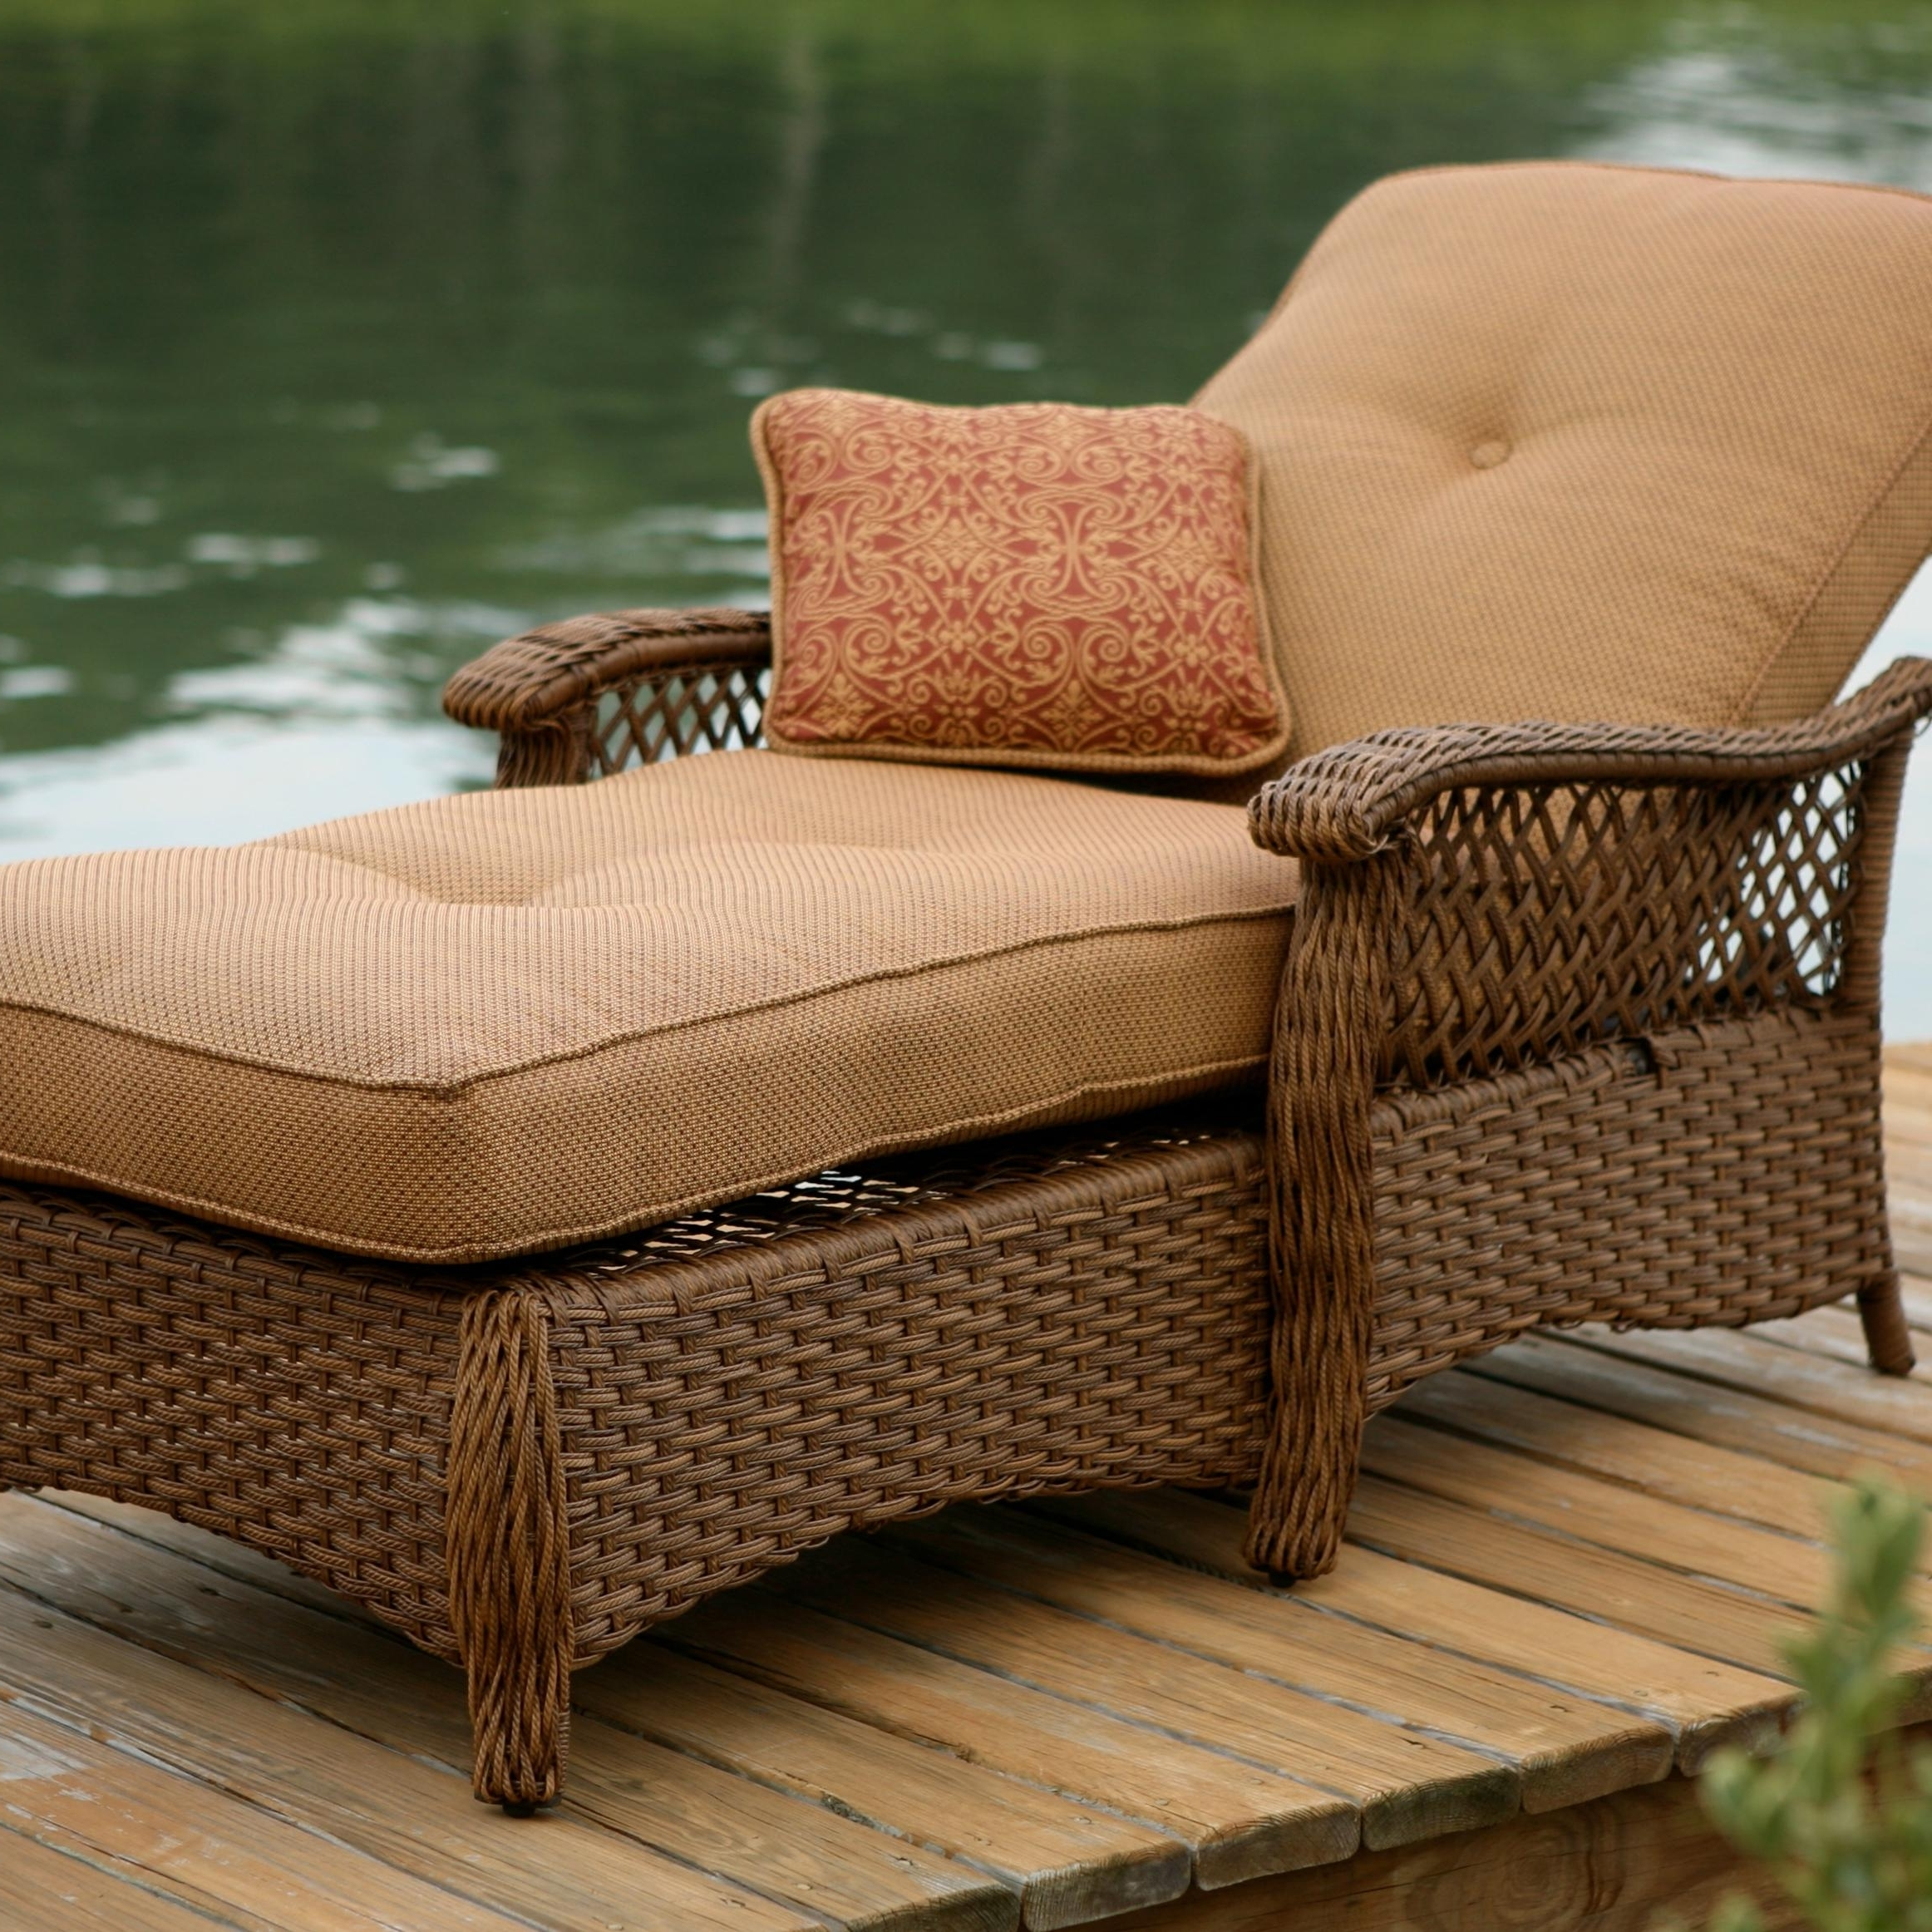 Outdoor Chaise Lounge Chairs With Arms In Well Known Agio Veranda–Agio Outdoor Tan Woven Chaise Lounge Chair With Seat (View 8 of 15)